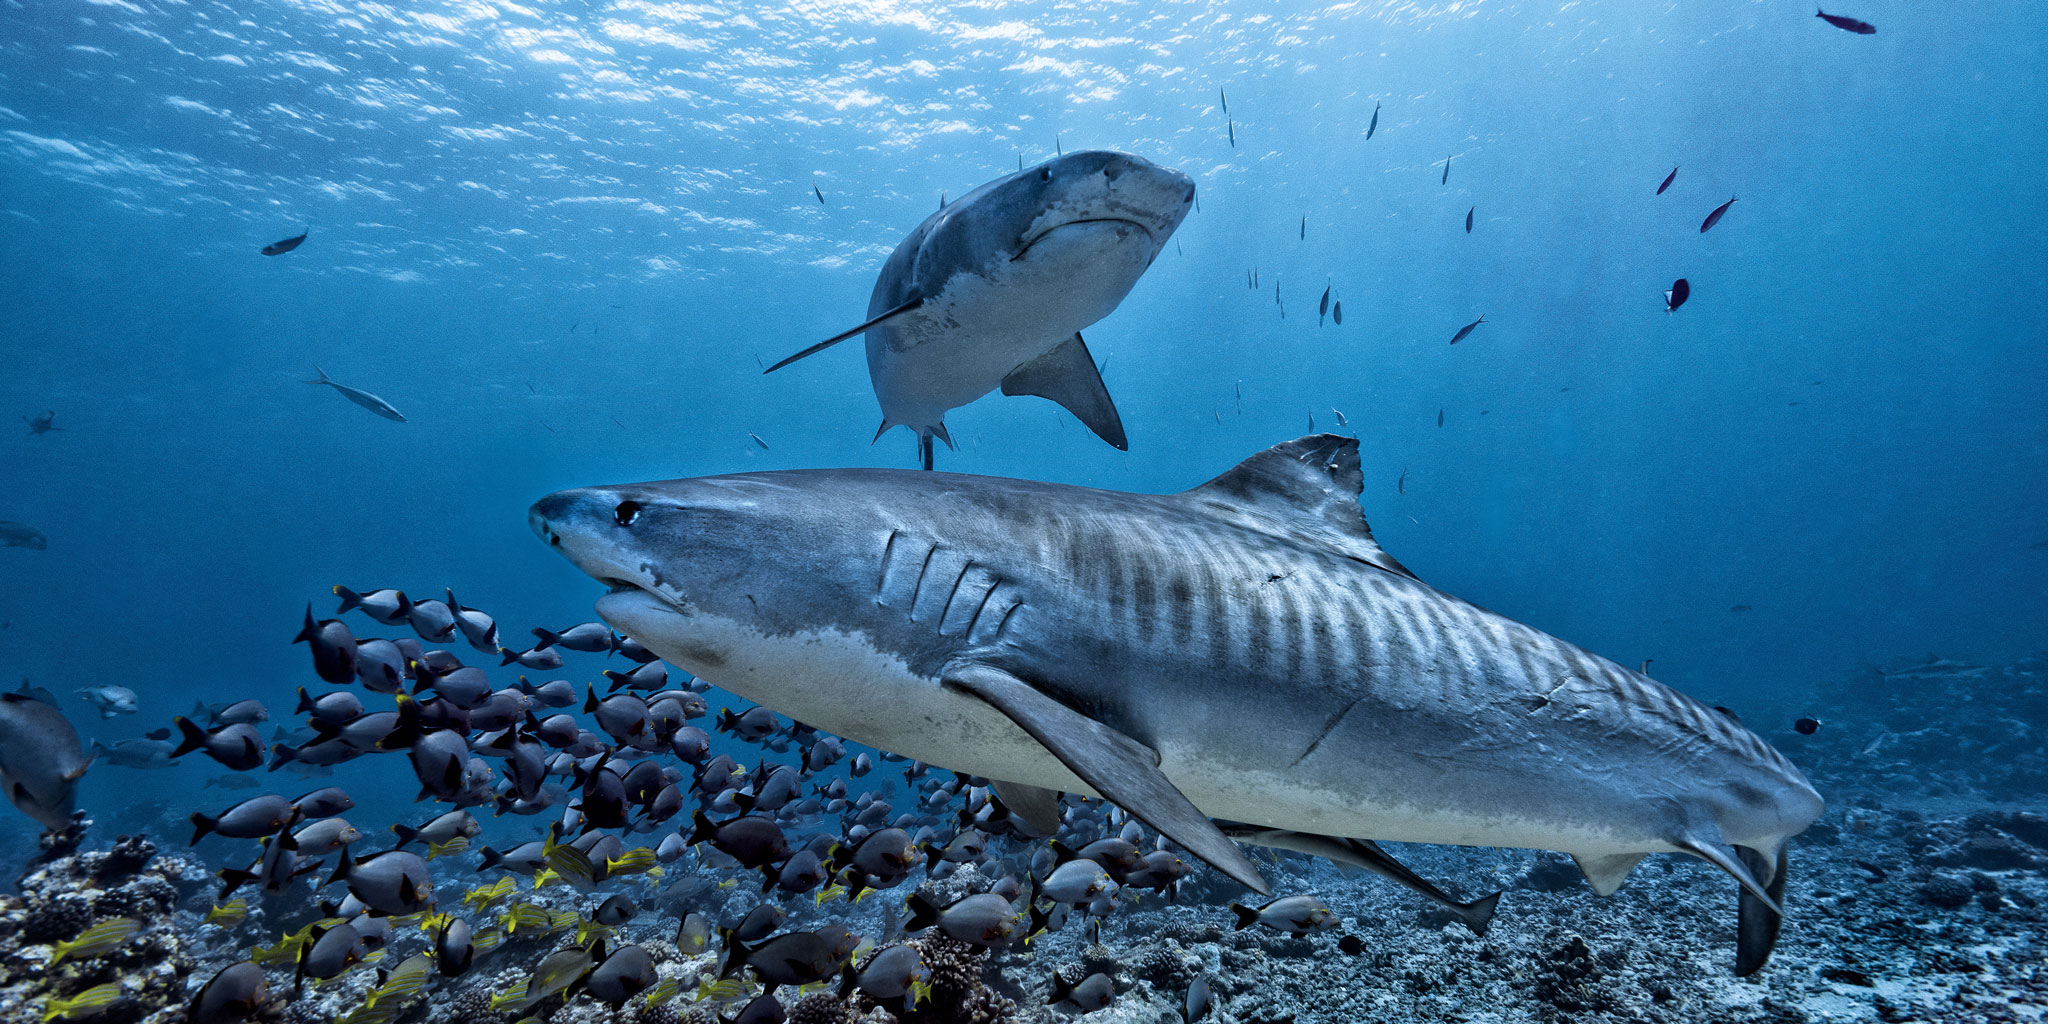 tiger sharks swimming underwater